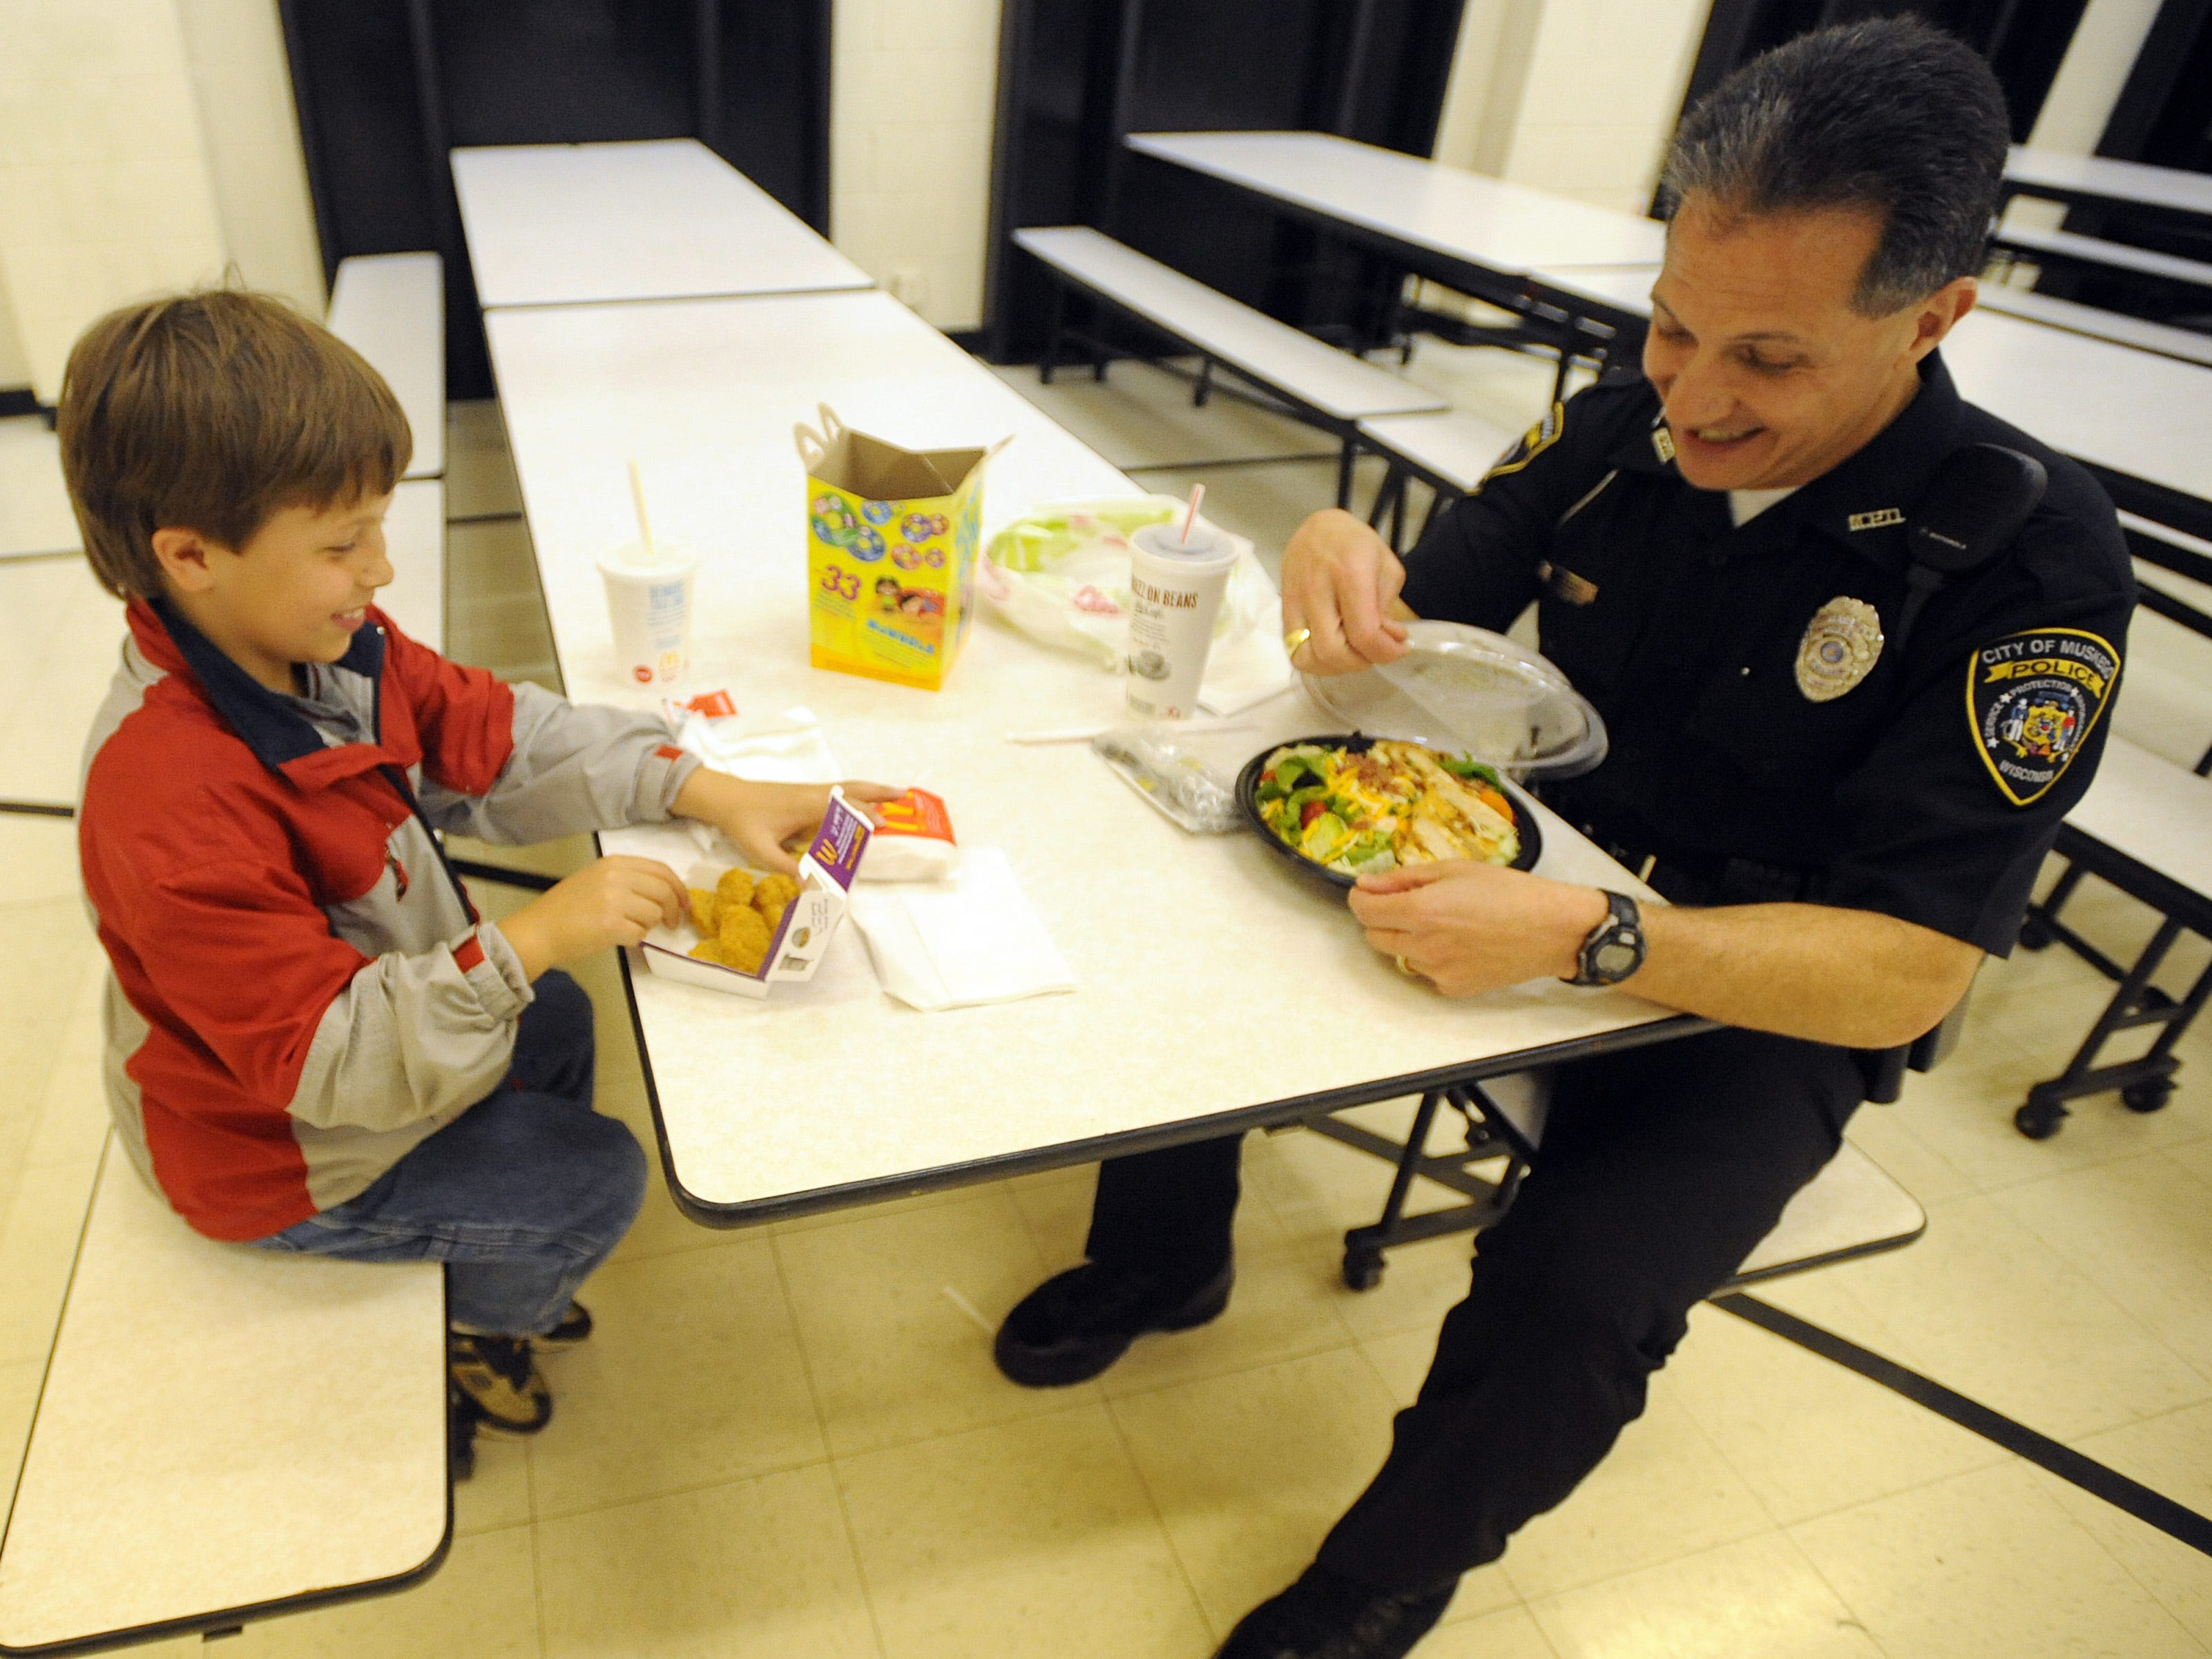 """Police officers eat lunch too,"" said Muskego Police Officer Gary Leon as he sits down for lunch Wednesday, May 6, 2009, with Colten Kersky, a second-grader at Muskego Elementary School. Colten won the lunch, along with a ride to school in Leon's police car, through a raffle at the school's spring carnival."